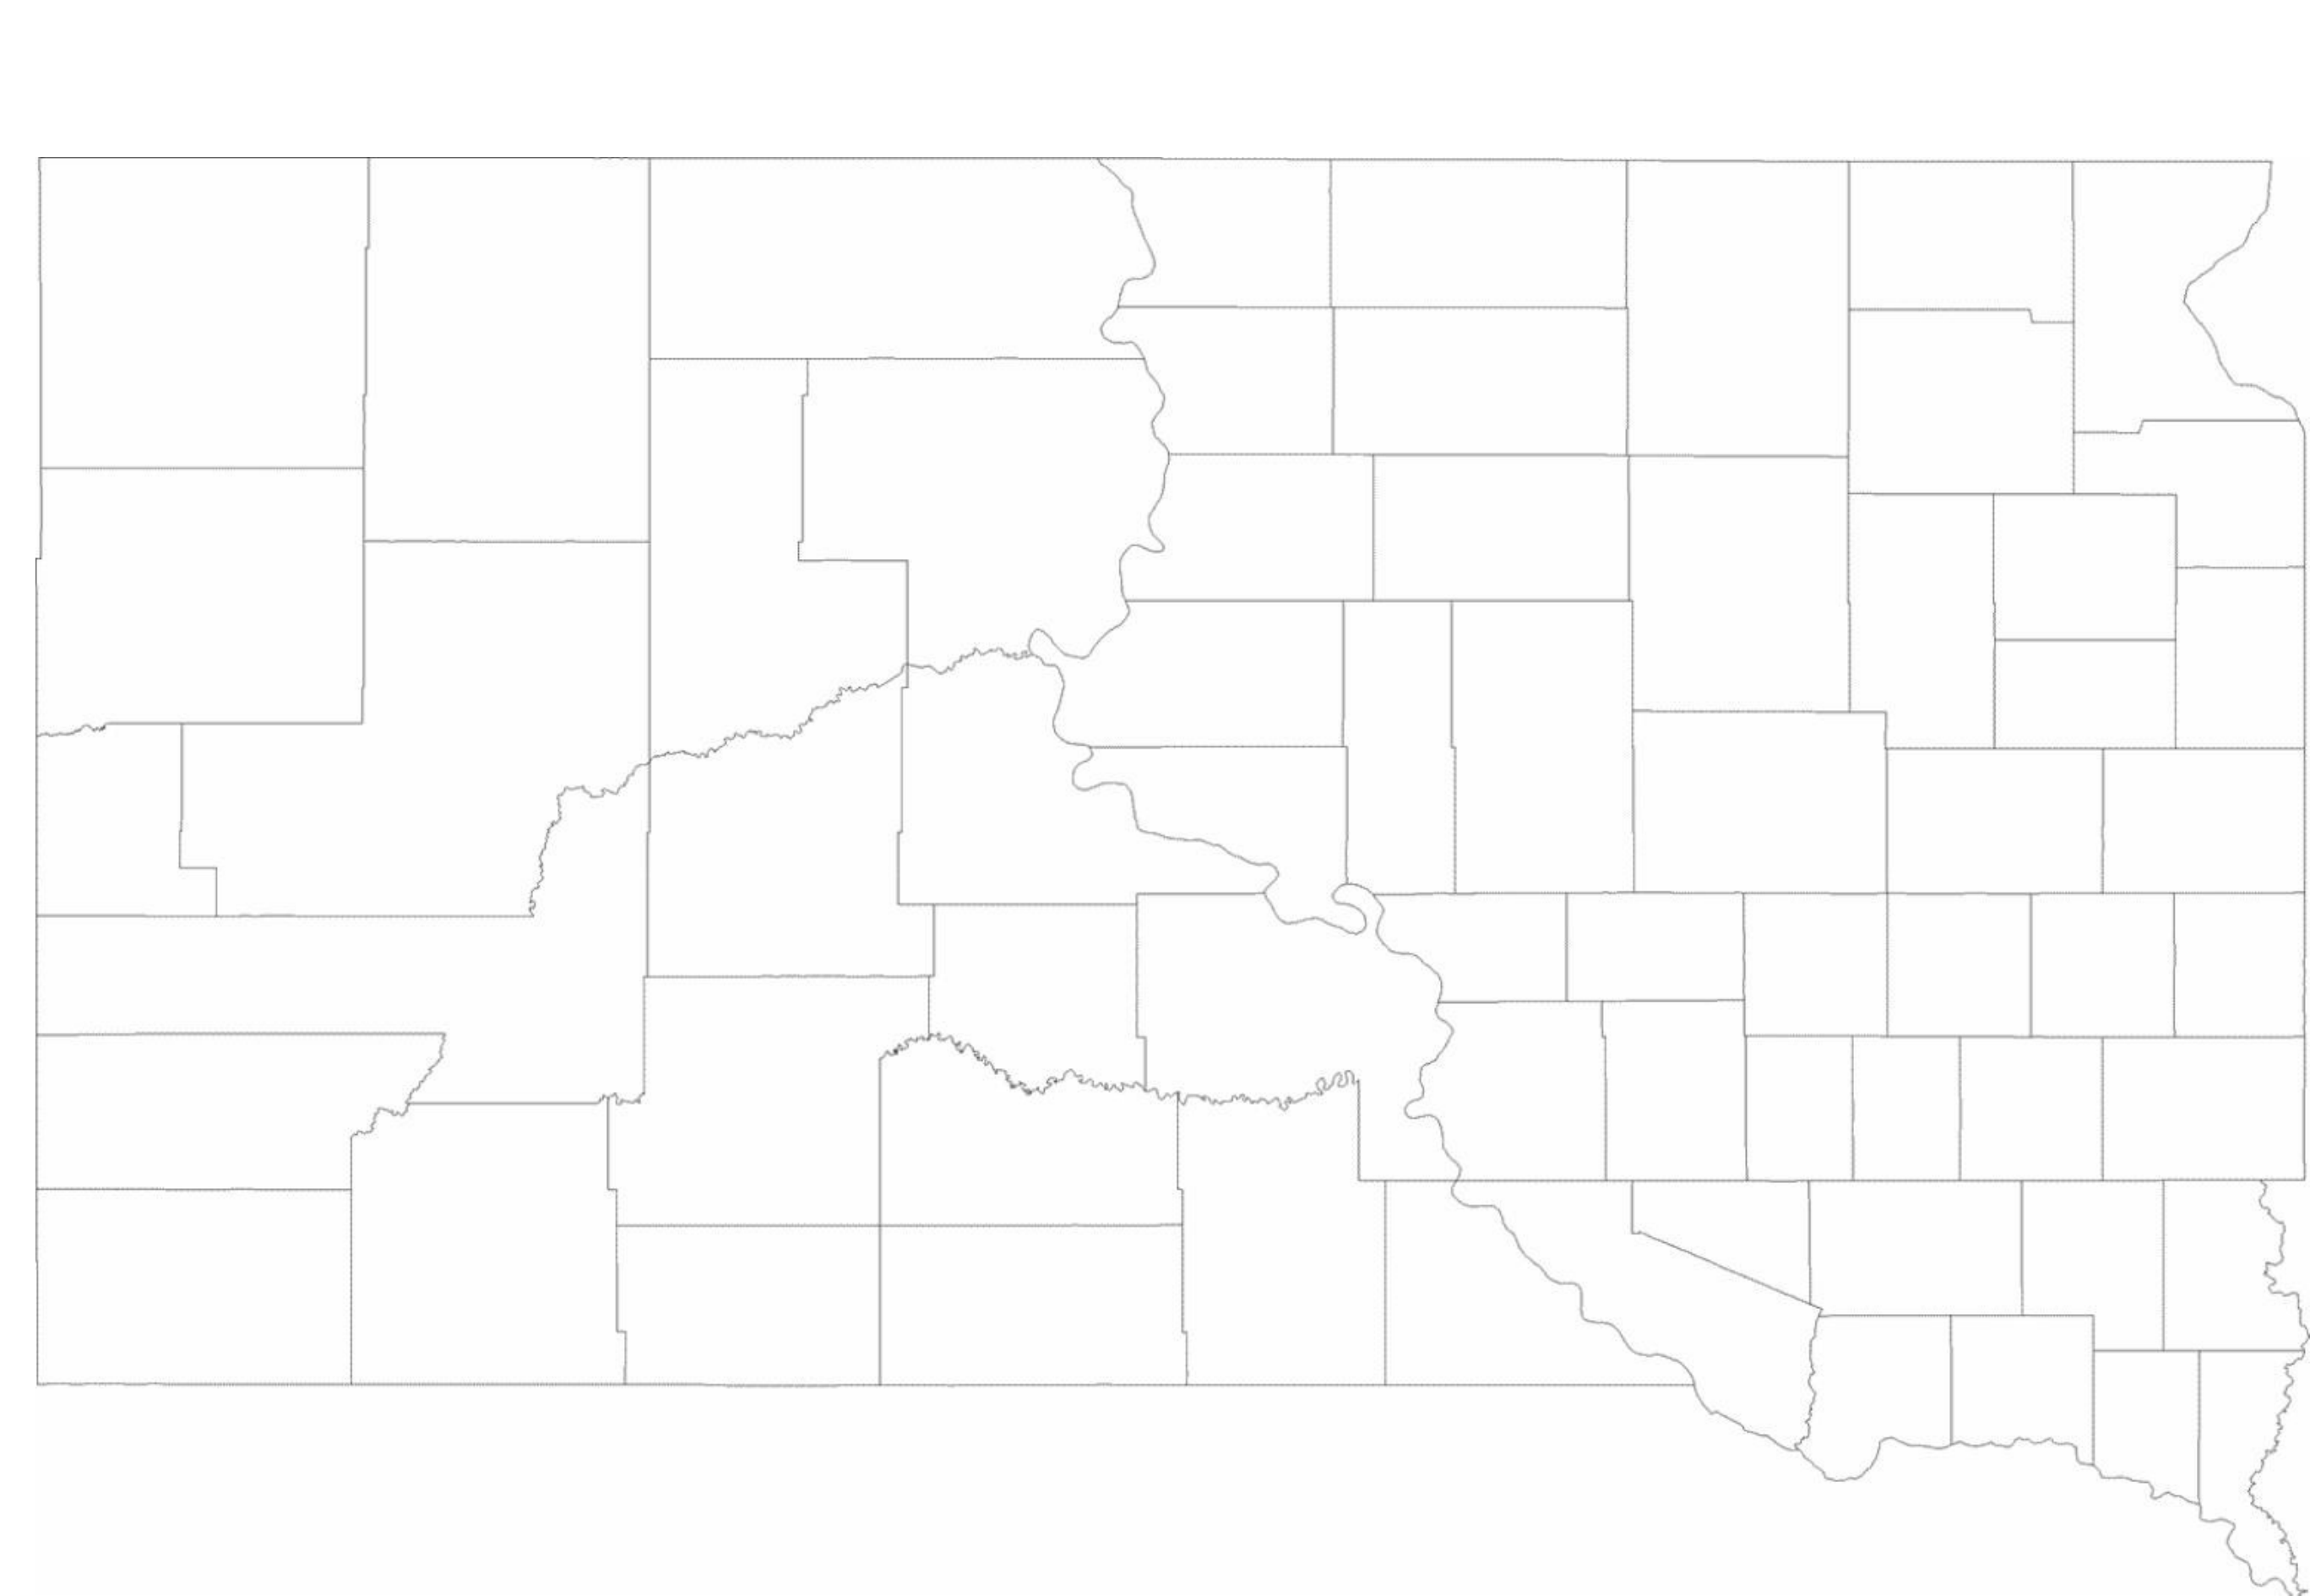 graphic regarding South Dakota County Map Printable known as Blank South Dakota County Map Free of charge Obtain